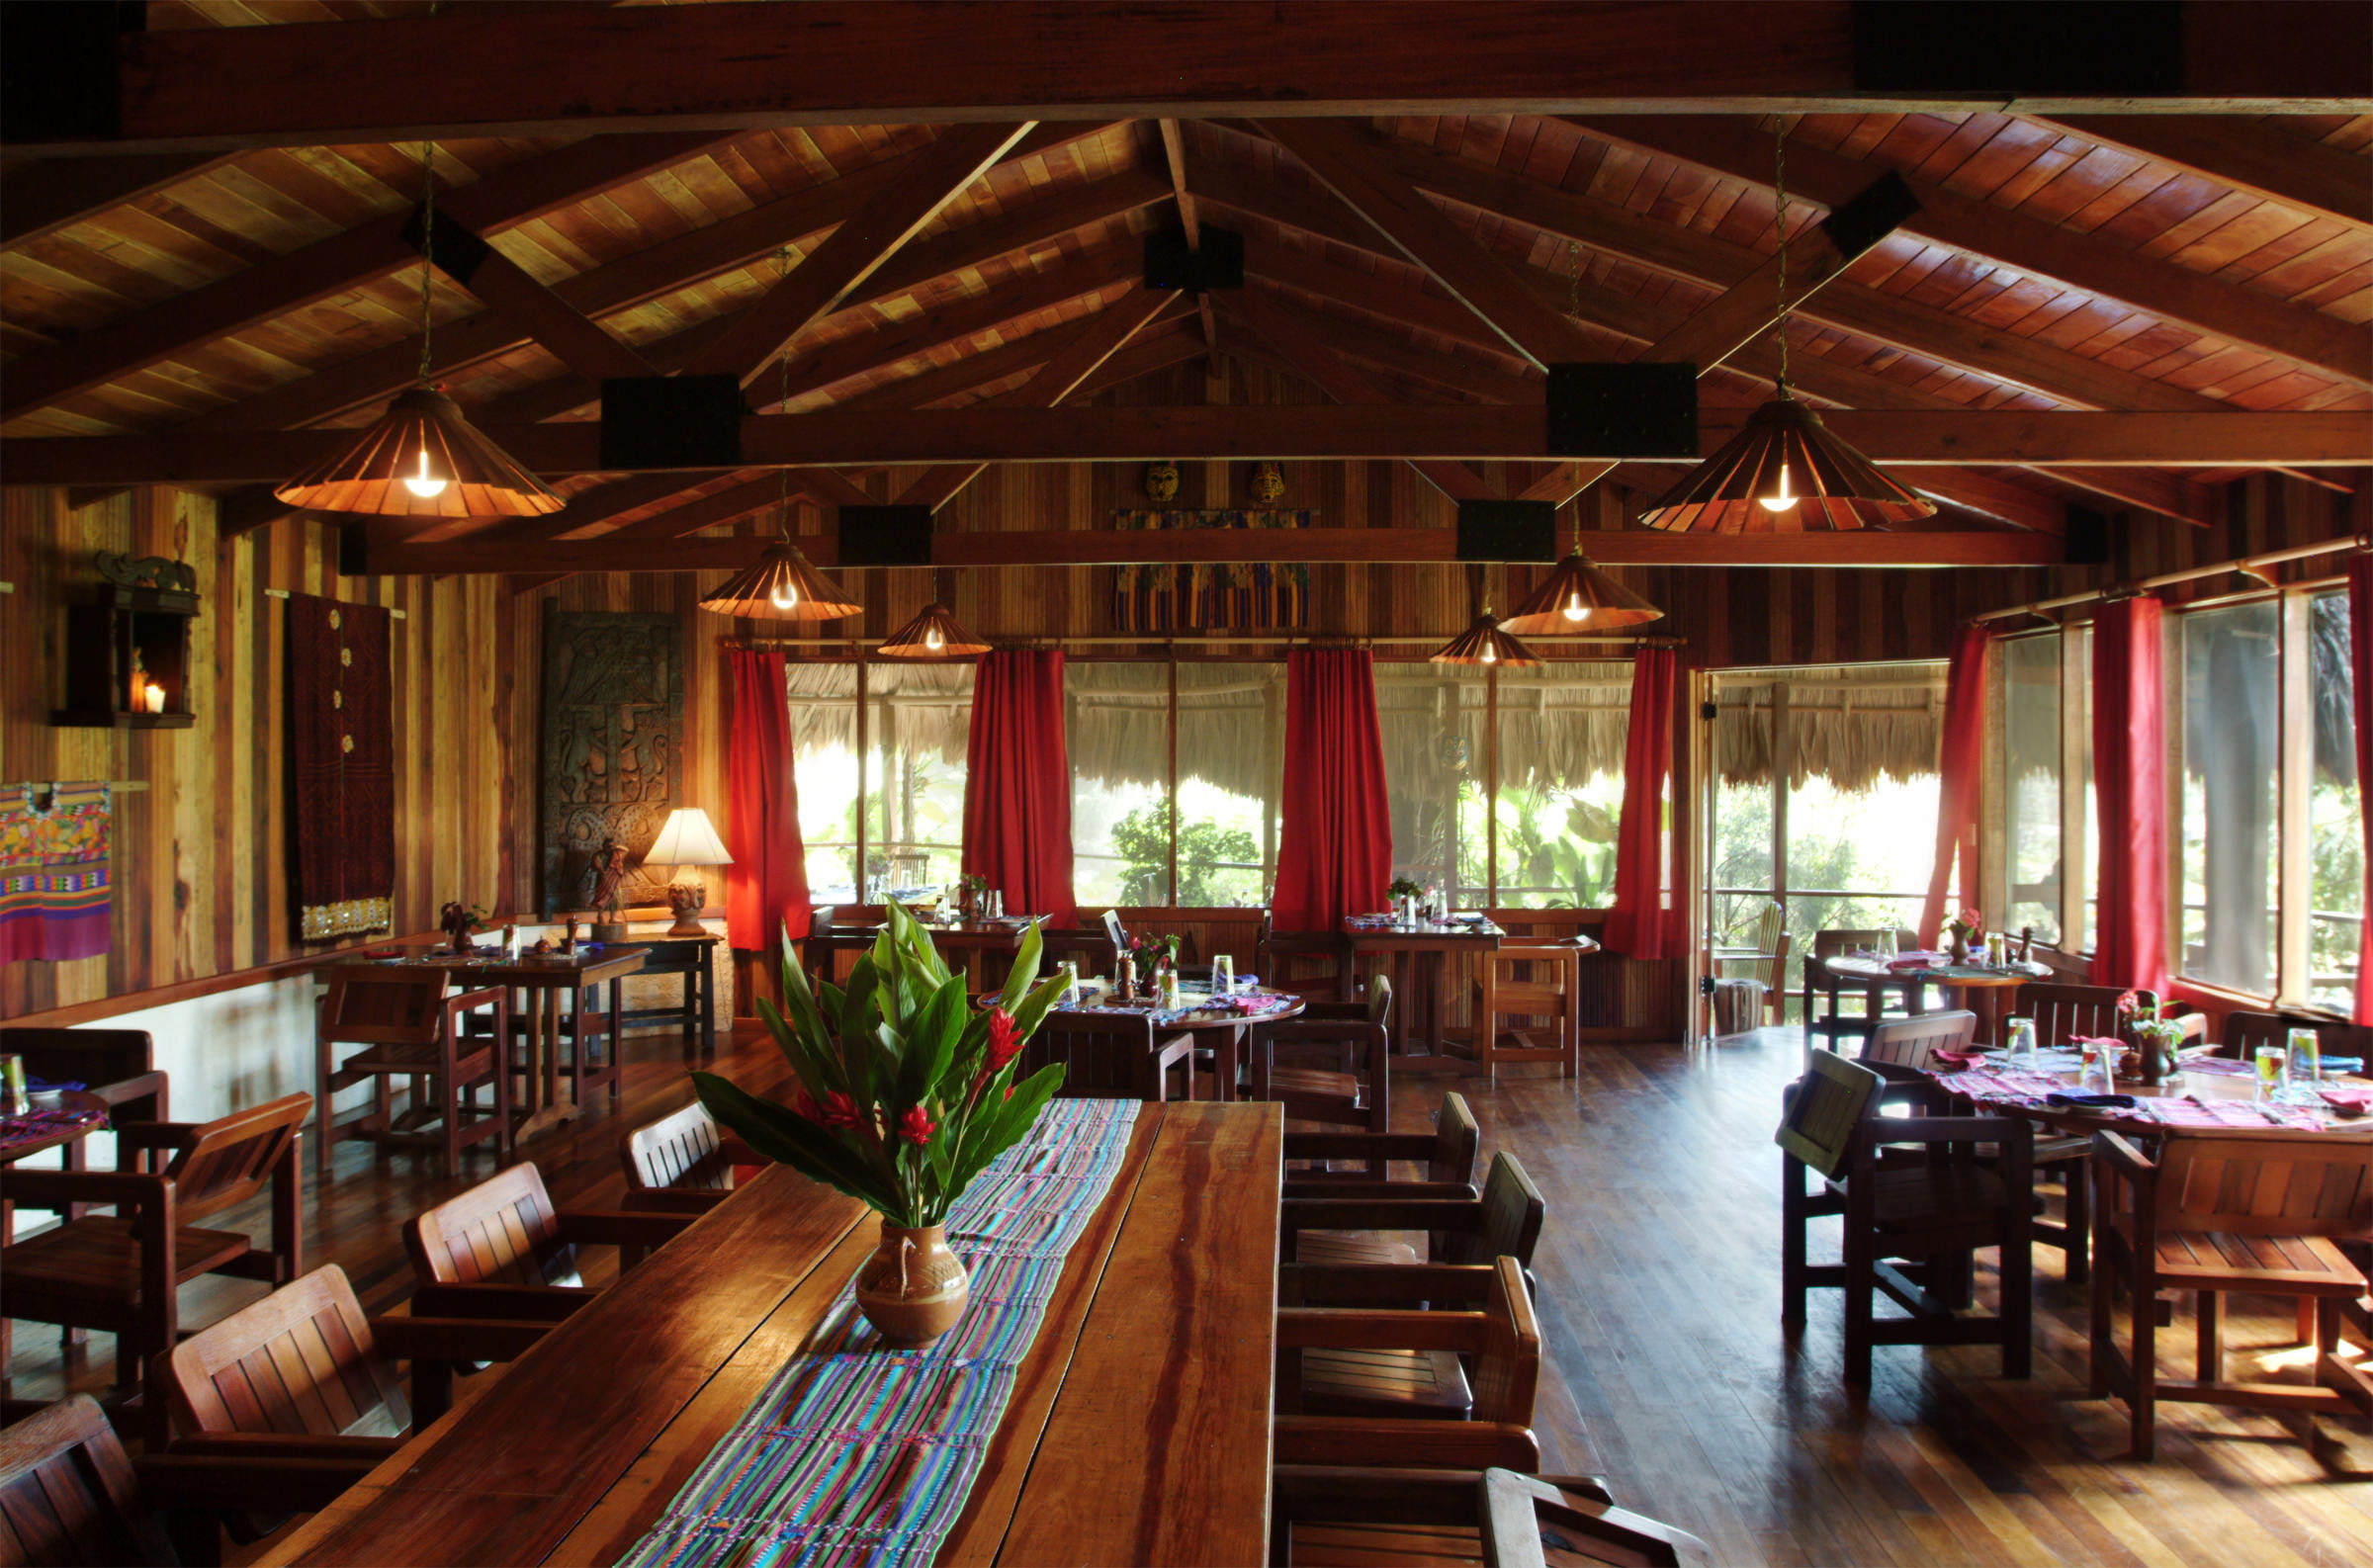 Belize Restaurant Belize Cuisine Montagna Ristorante At